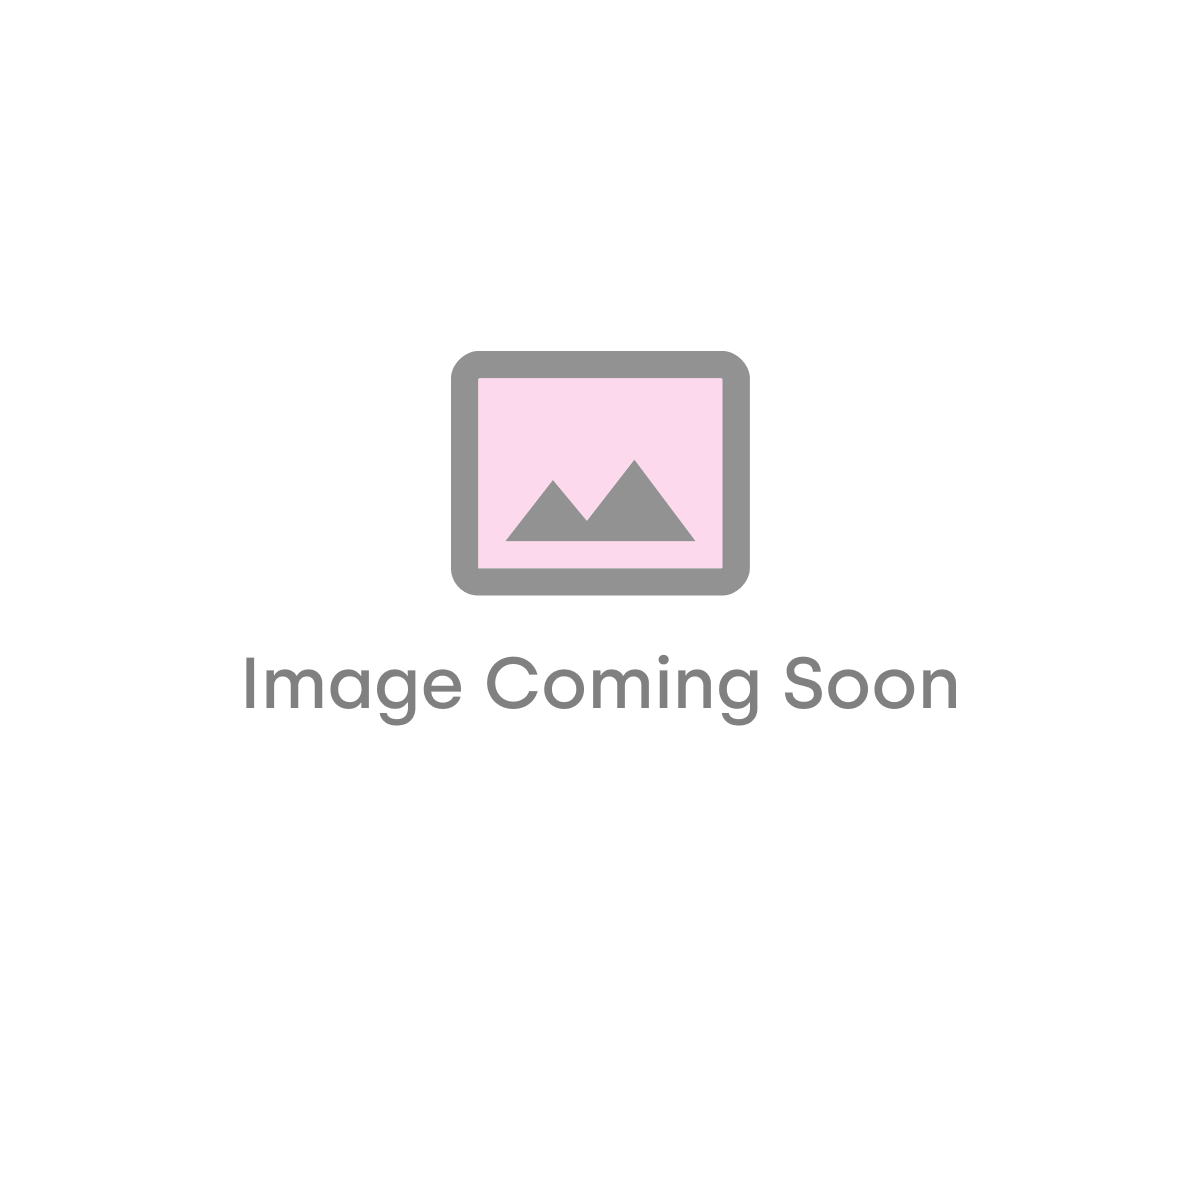 Aquadart Rolla 8 1000mm Sliding Wetroom Panel (14251)